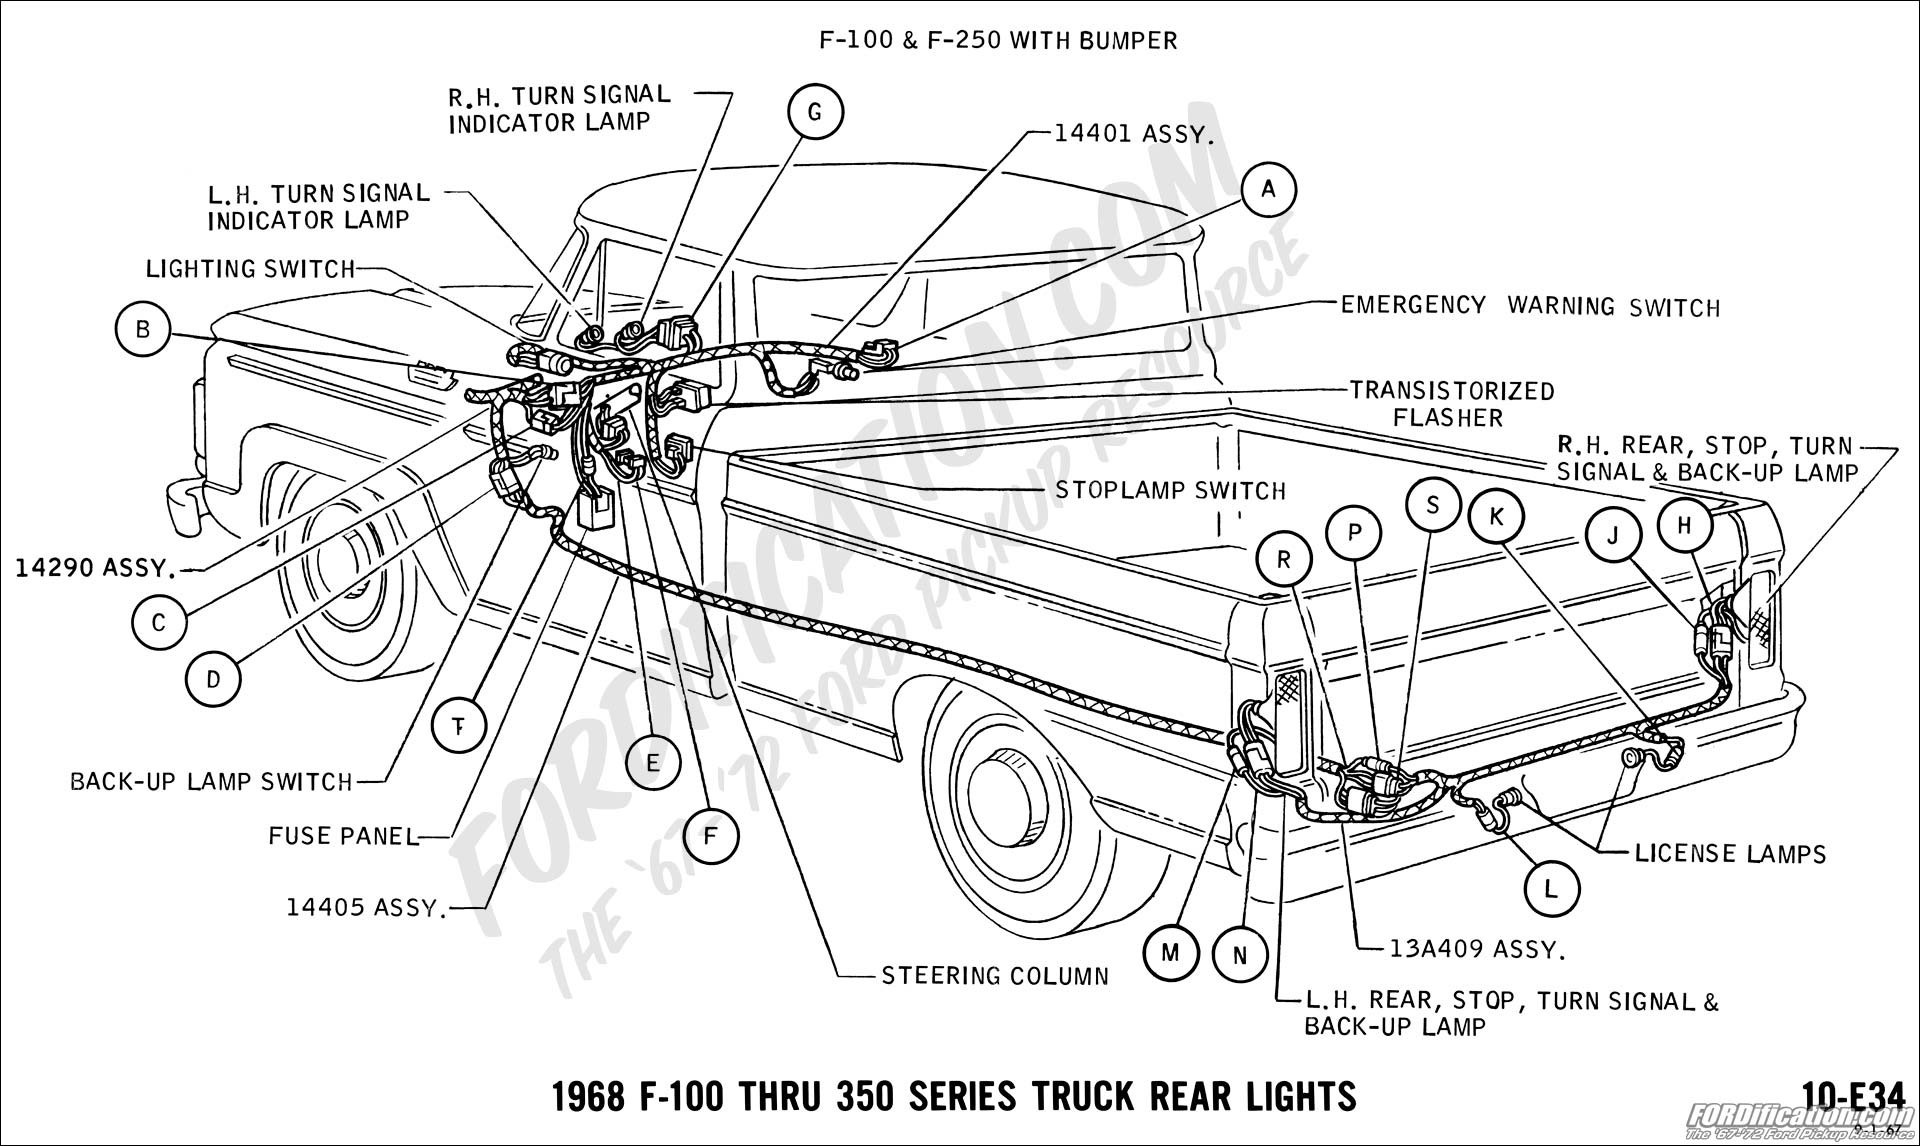 Parts Of A Pickup Truck Diagram 1970 Gmc Truck Colors Worksheet ...